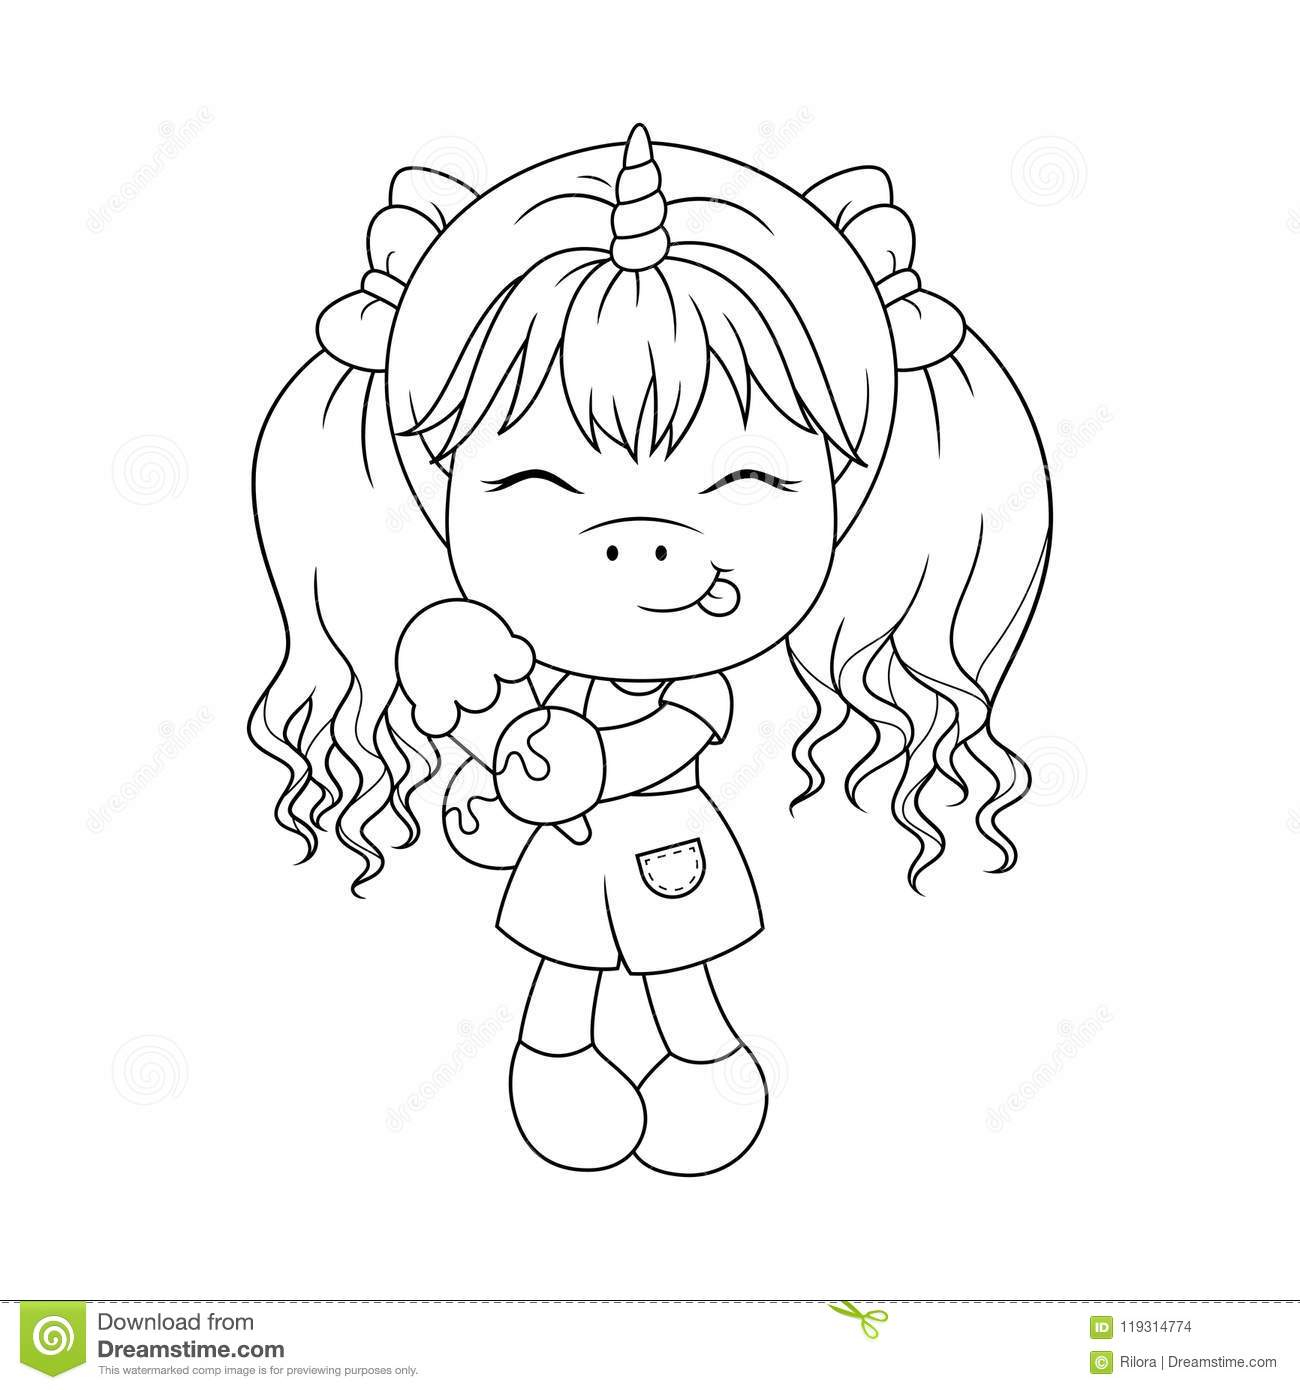 Cute Baby Unicorn Holding Ice Cream, Coloring Page For ...